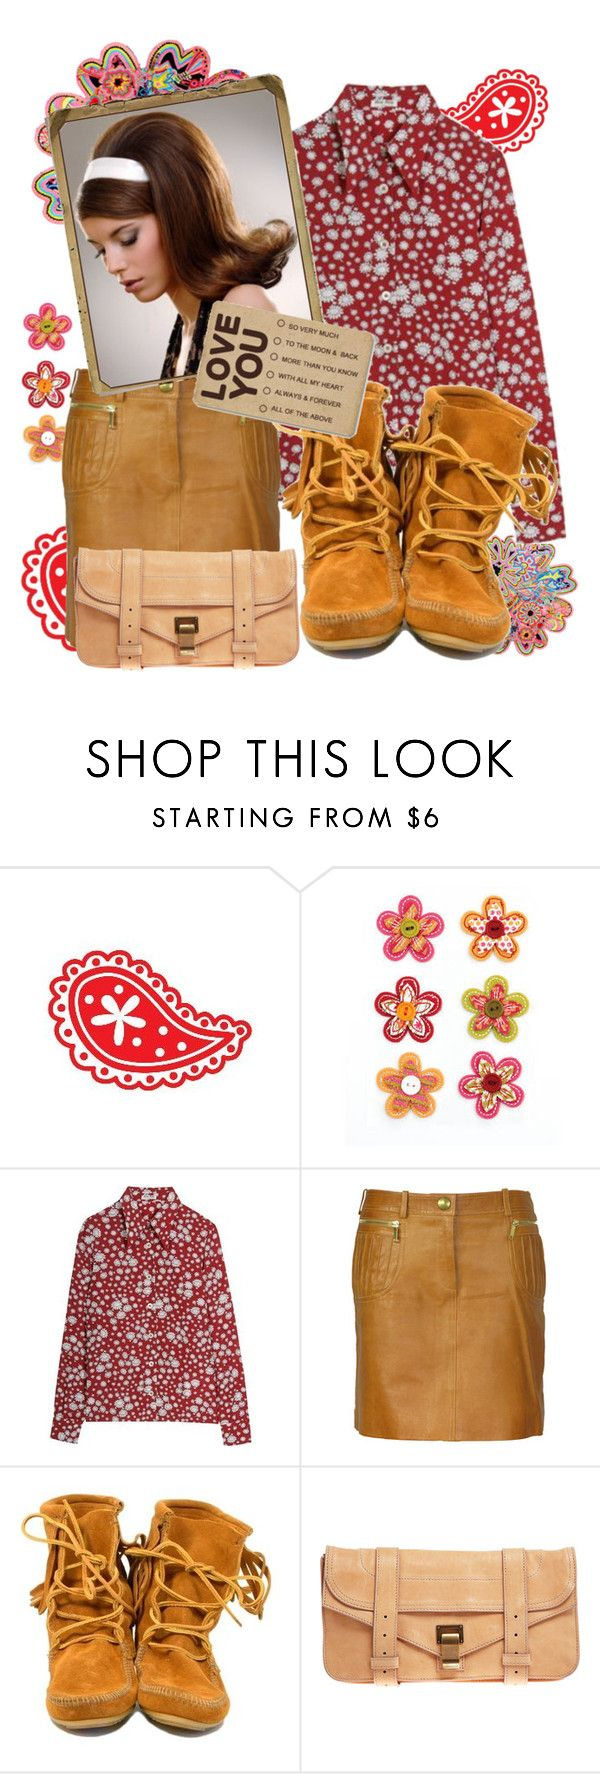 """'60"" by kirathestrange ❤ liked on Polyvore featuring Miu Miu, CÉLINE, Minnetonka, Proenza Schouler, combat boots, vintage inspired, sixty, leather messenger bags, leather and 60"